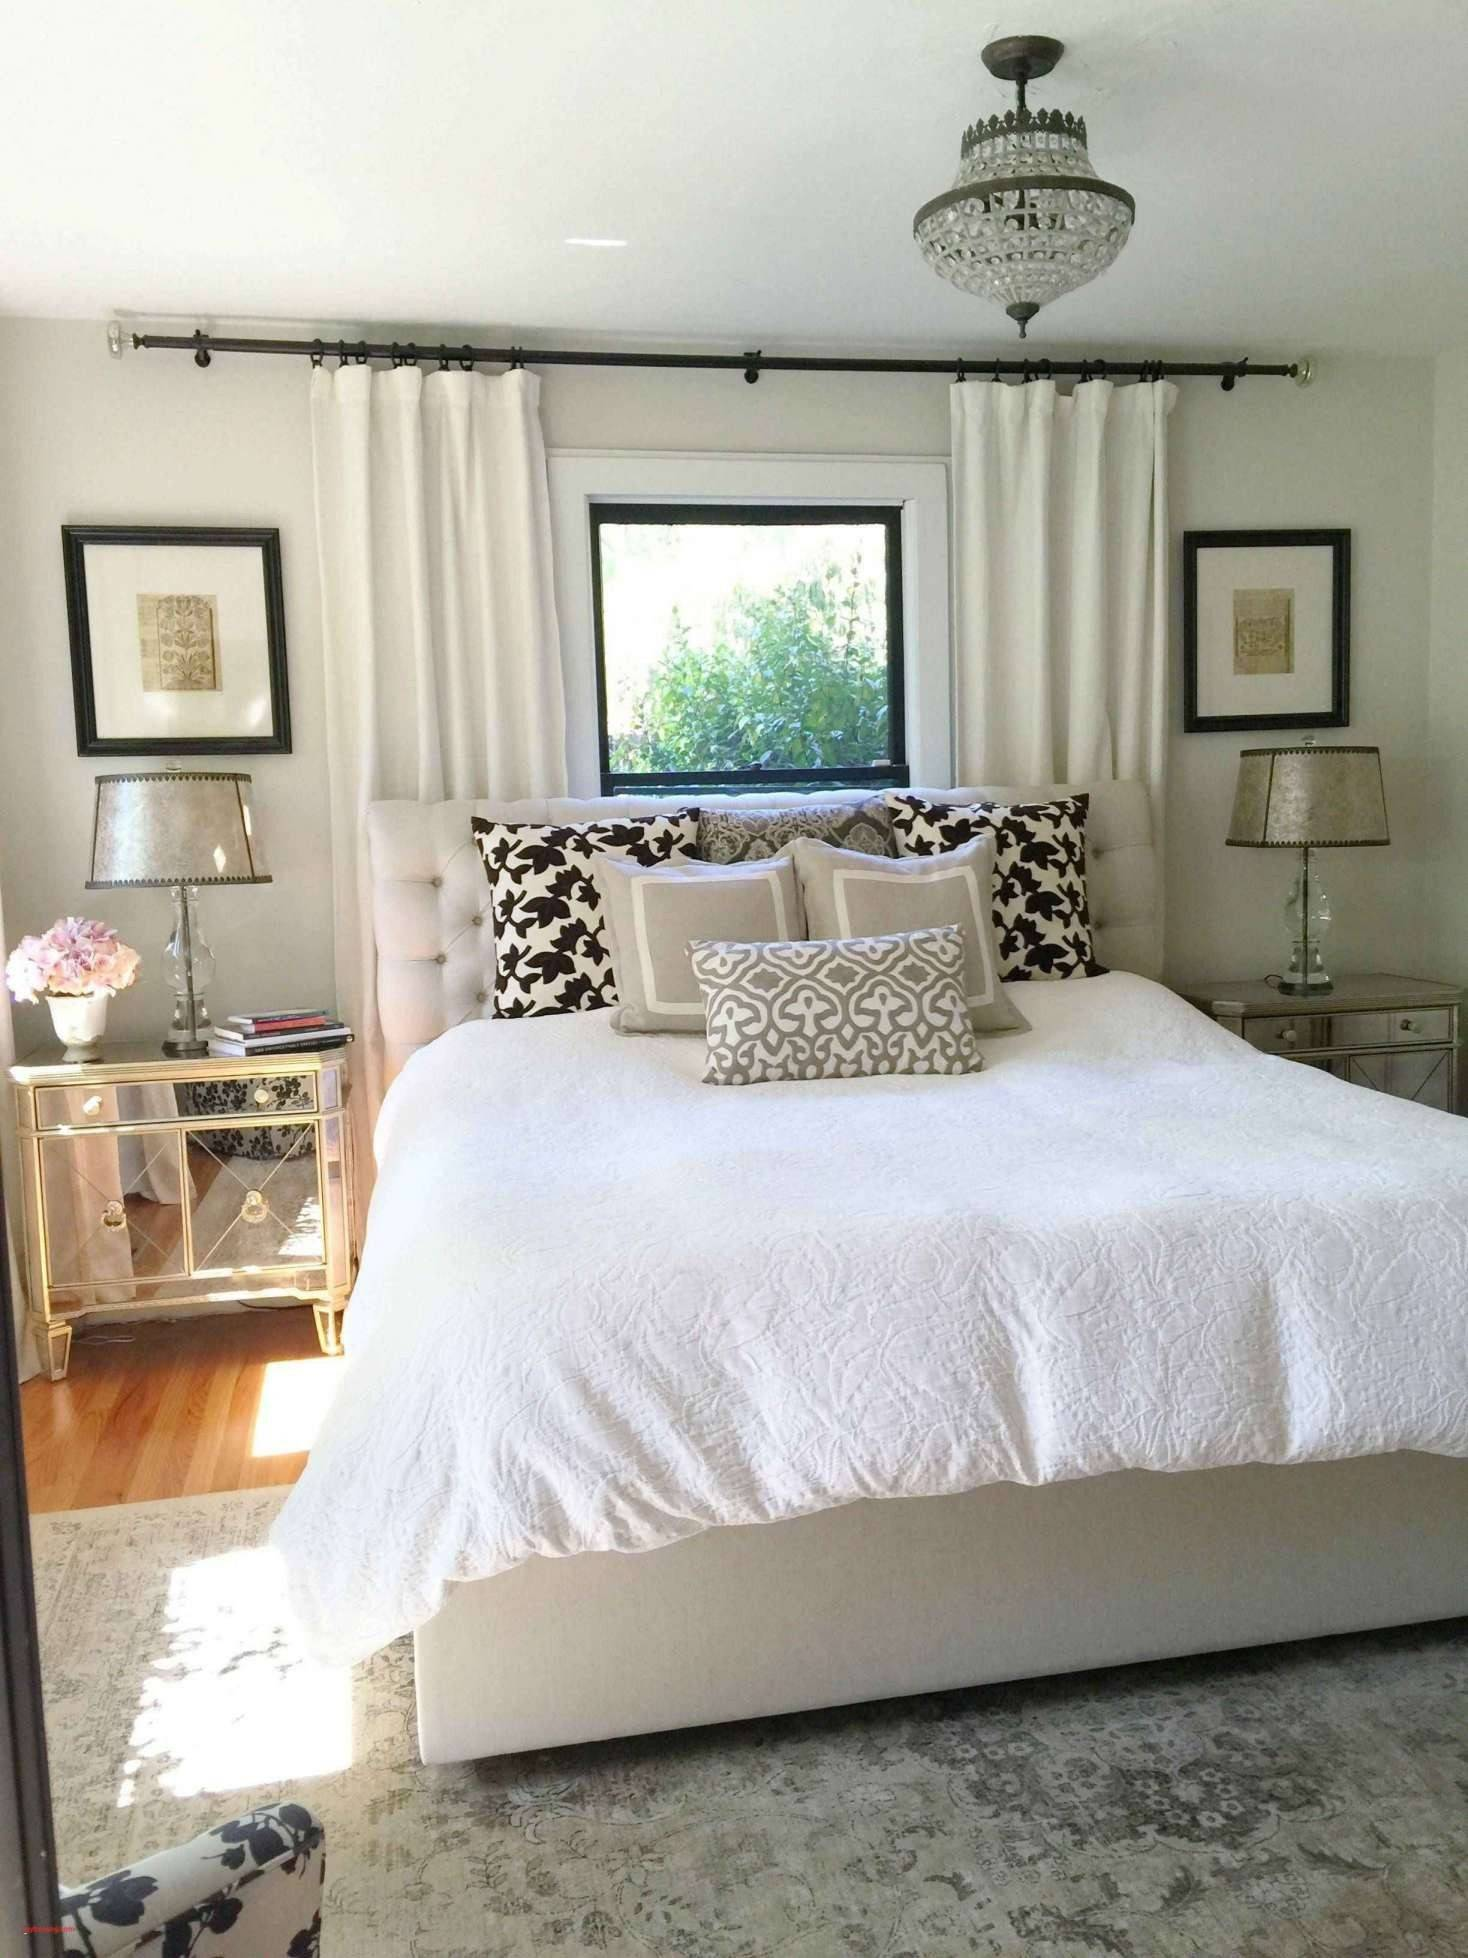 blue and gray master bedroom paint ideas room inspiration master bedroom paint ideas 2019 designs colors unique awesome